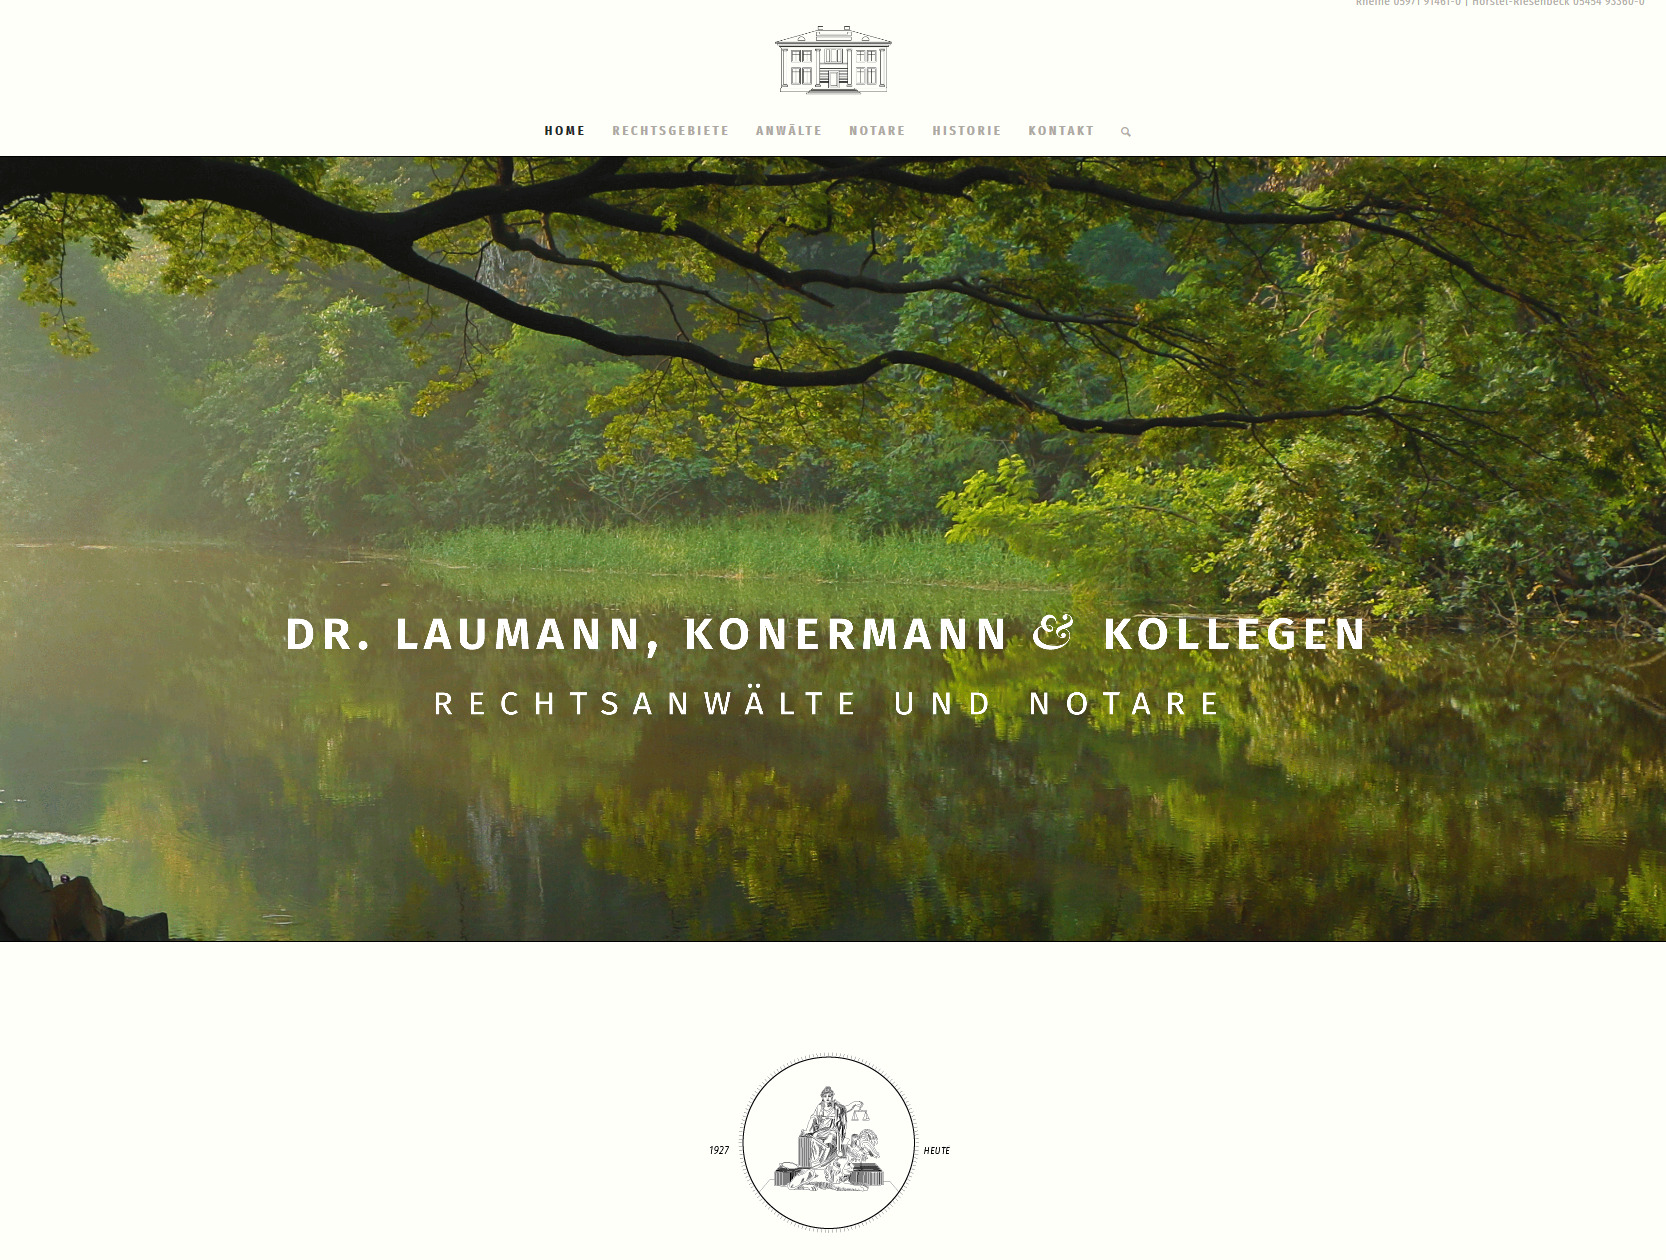 Dr. Laumann, Konermann & Kollegen Website